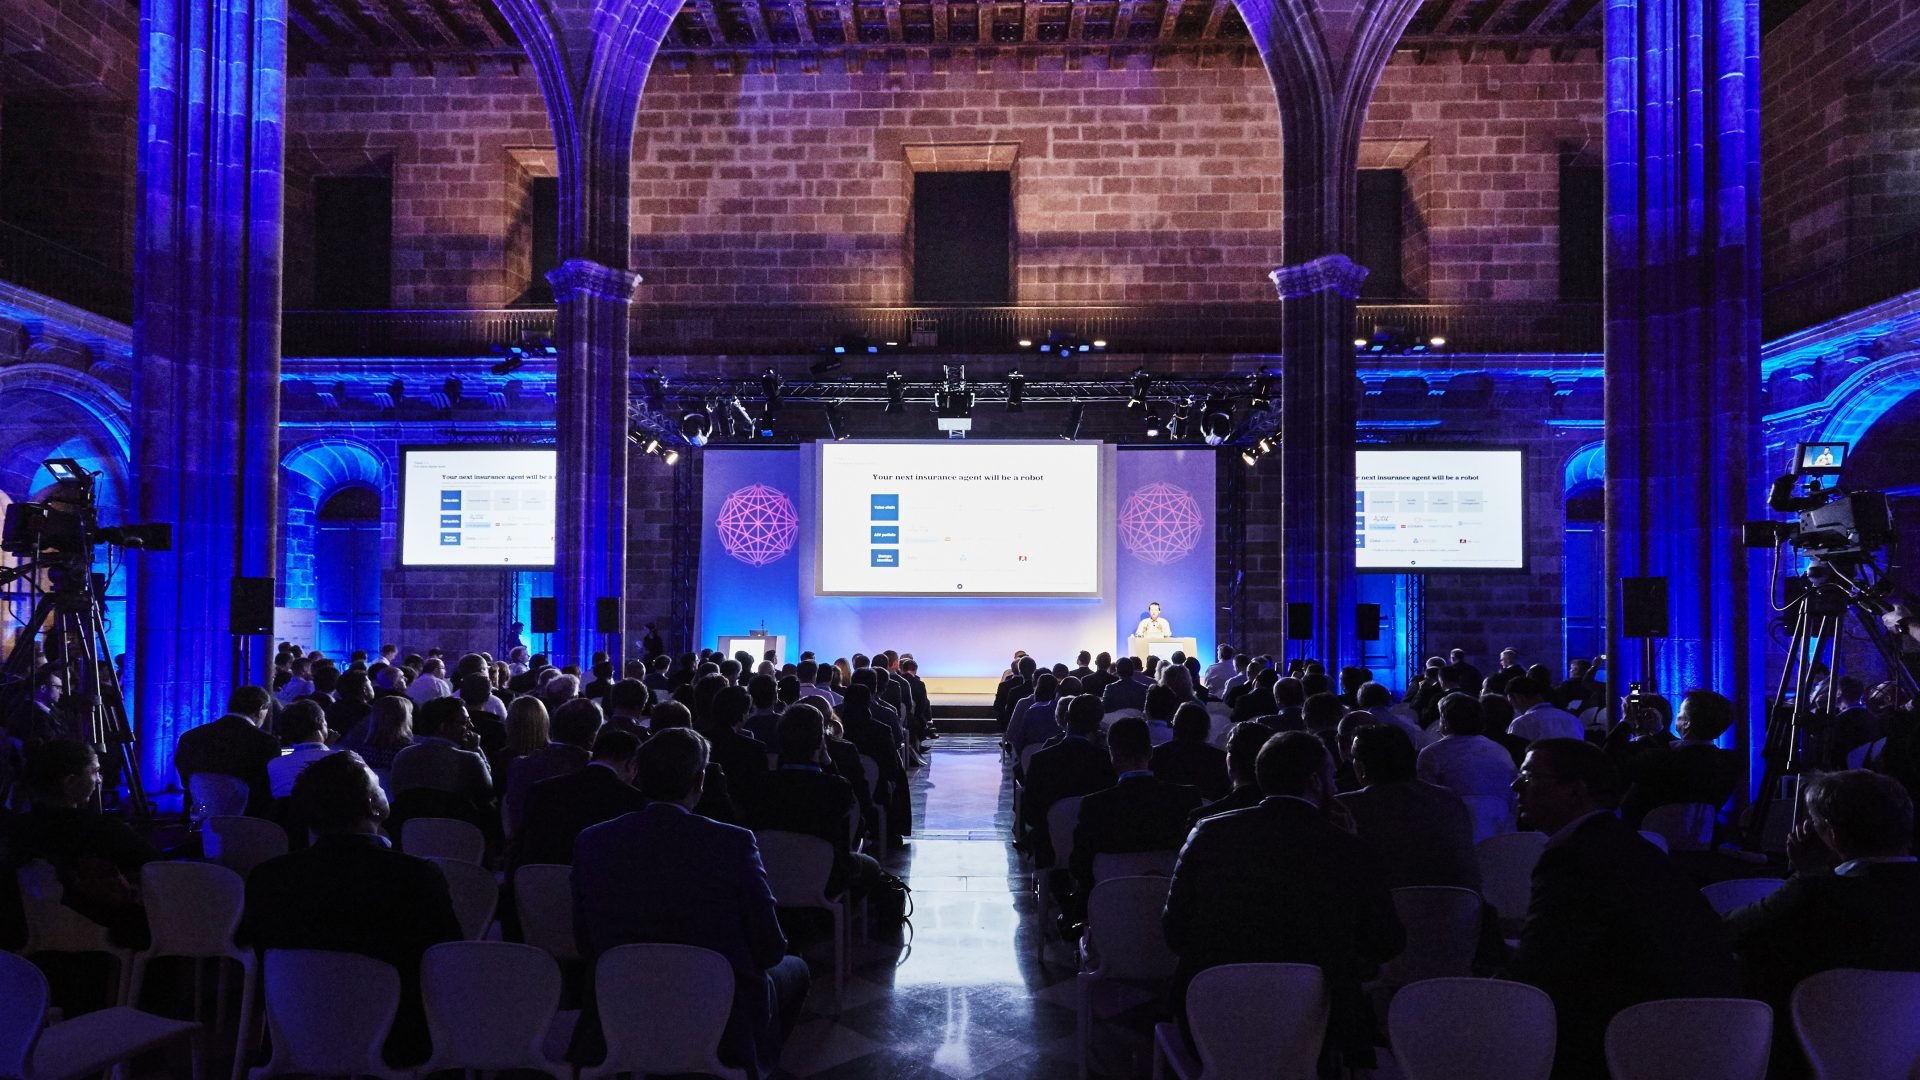 Corporate presentation in historical venue in Barcelona